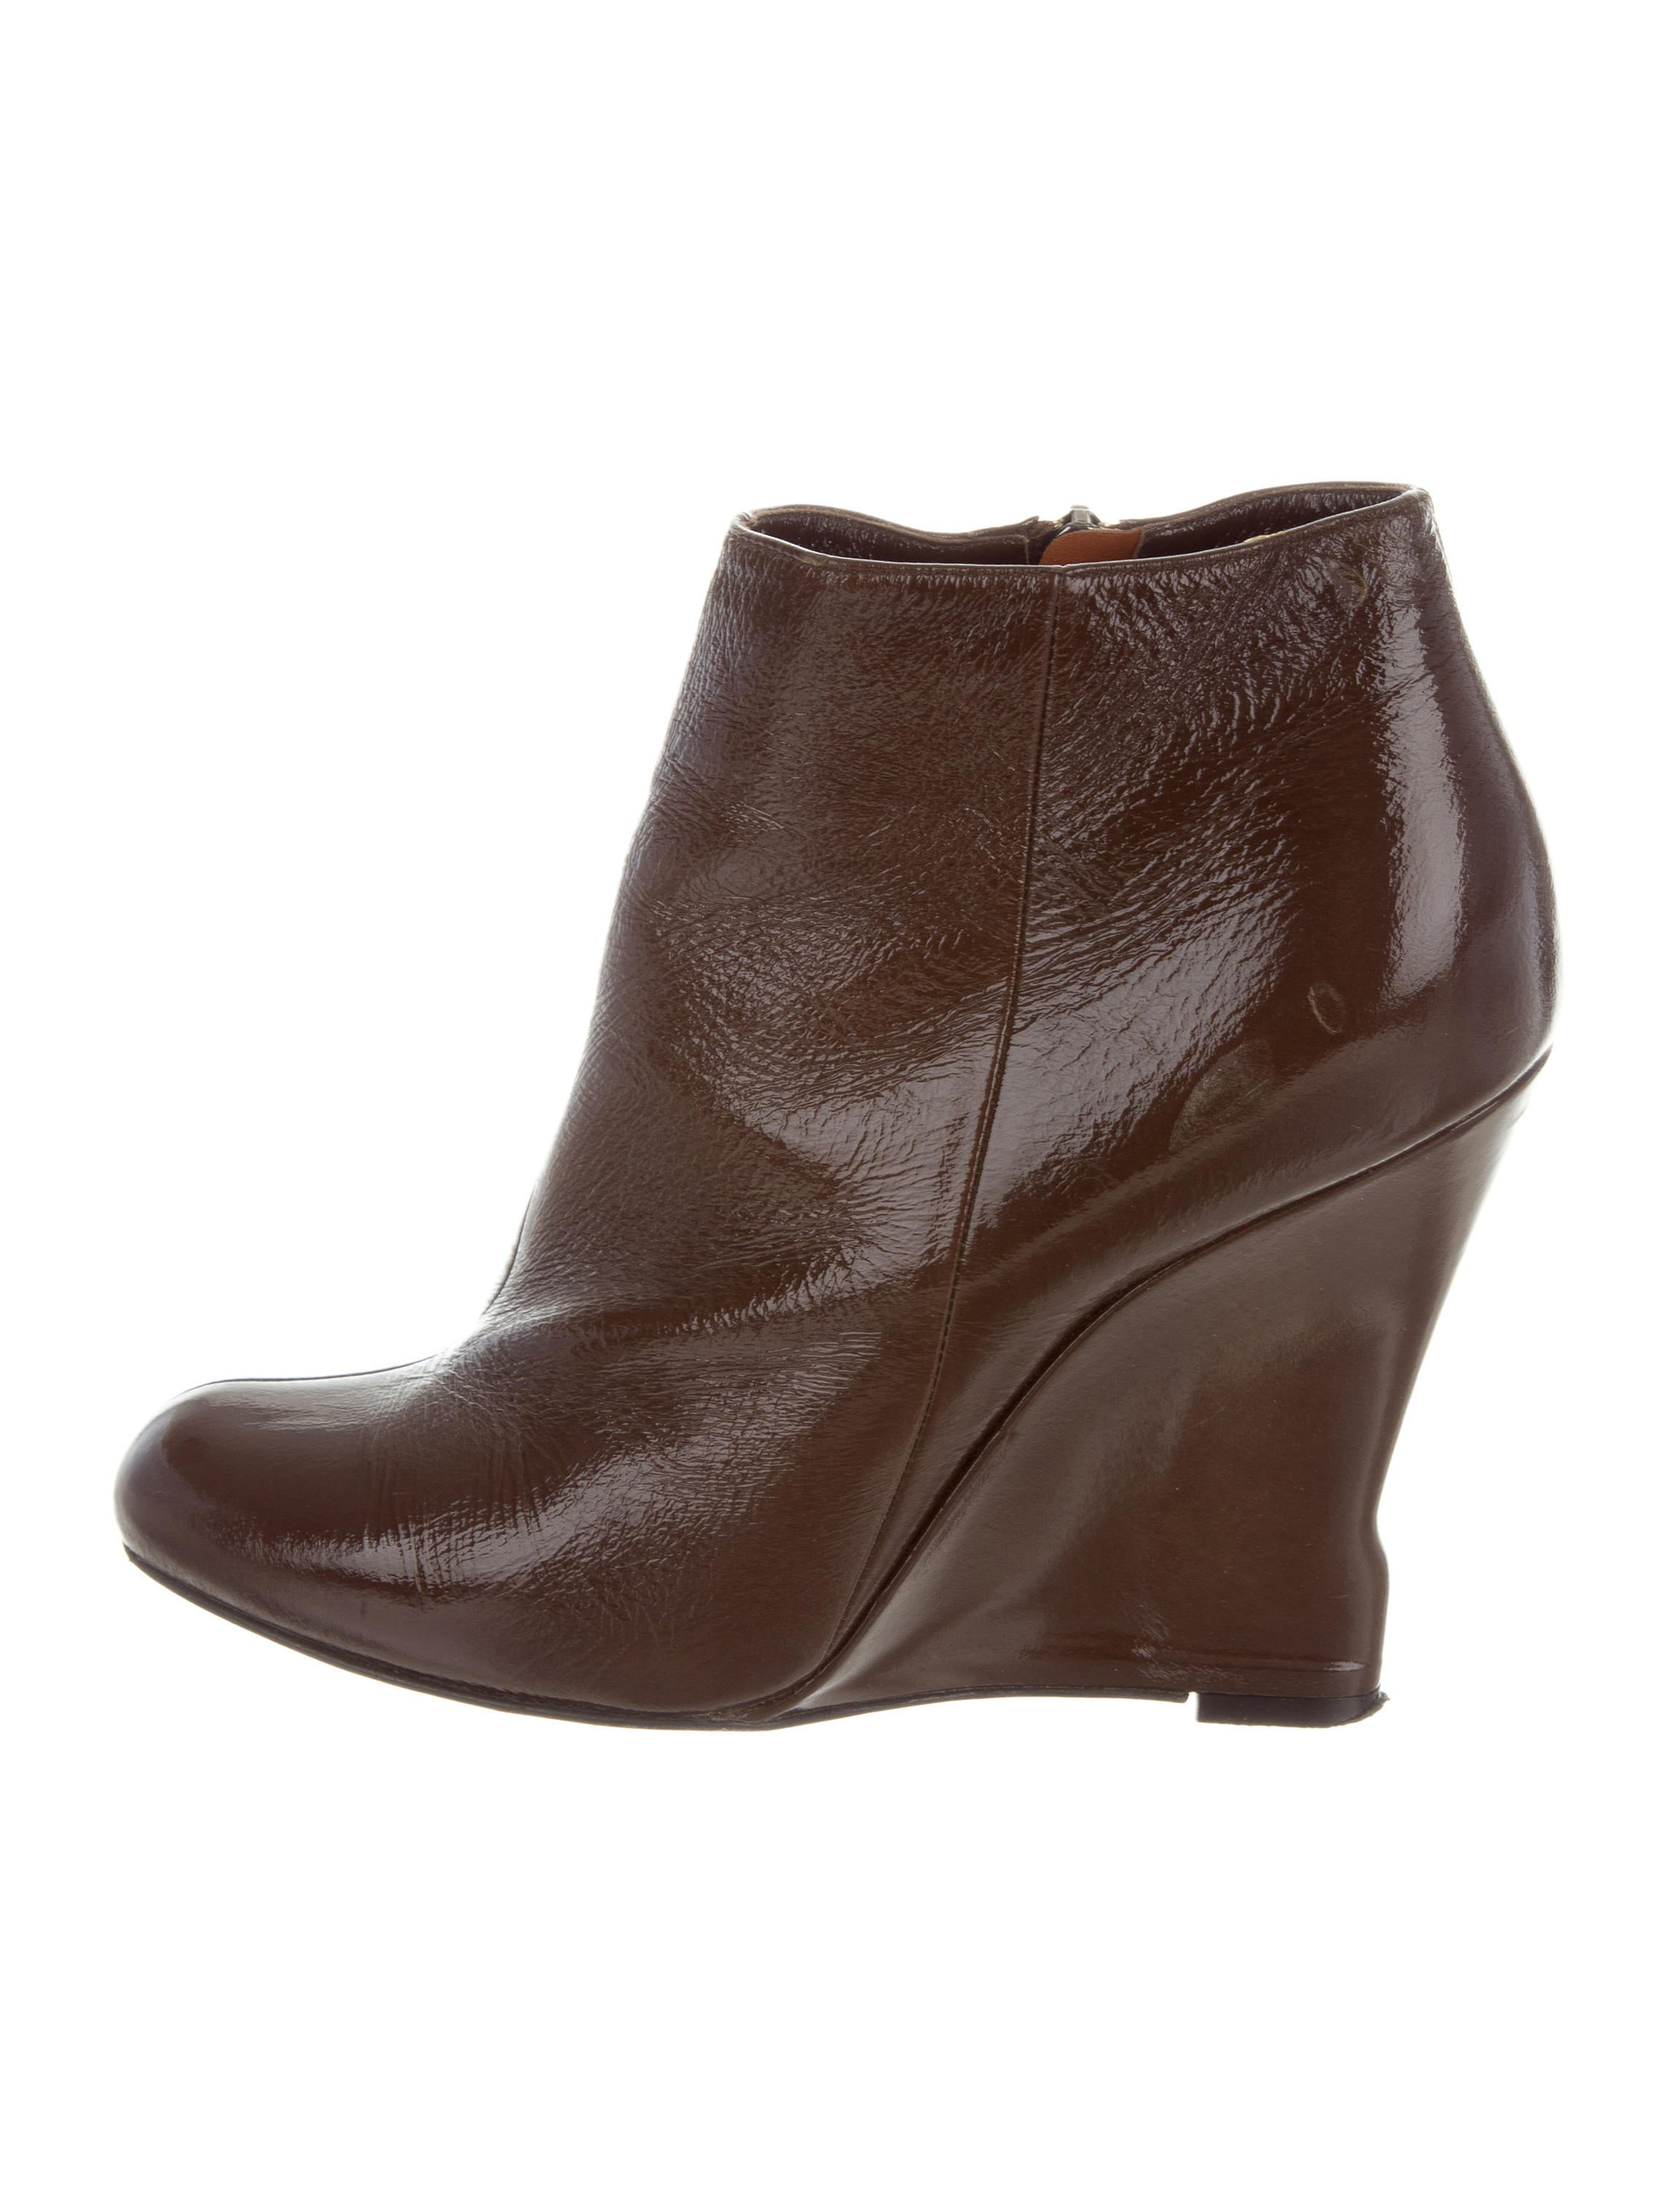 Lanvin Patent Leather Wedge Booties sale authentic clearance wide range of free shipping recommend amazing price cheap price discount pay with visa HL3pBiF